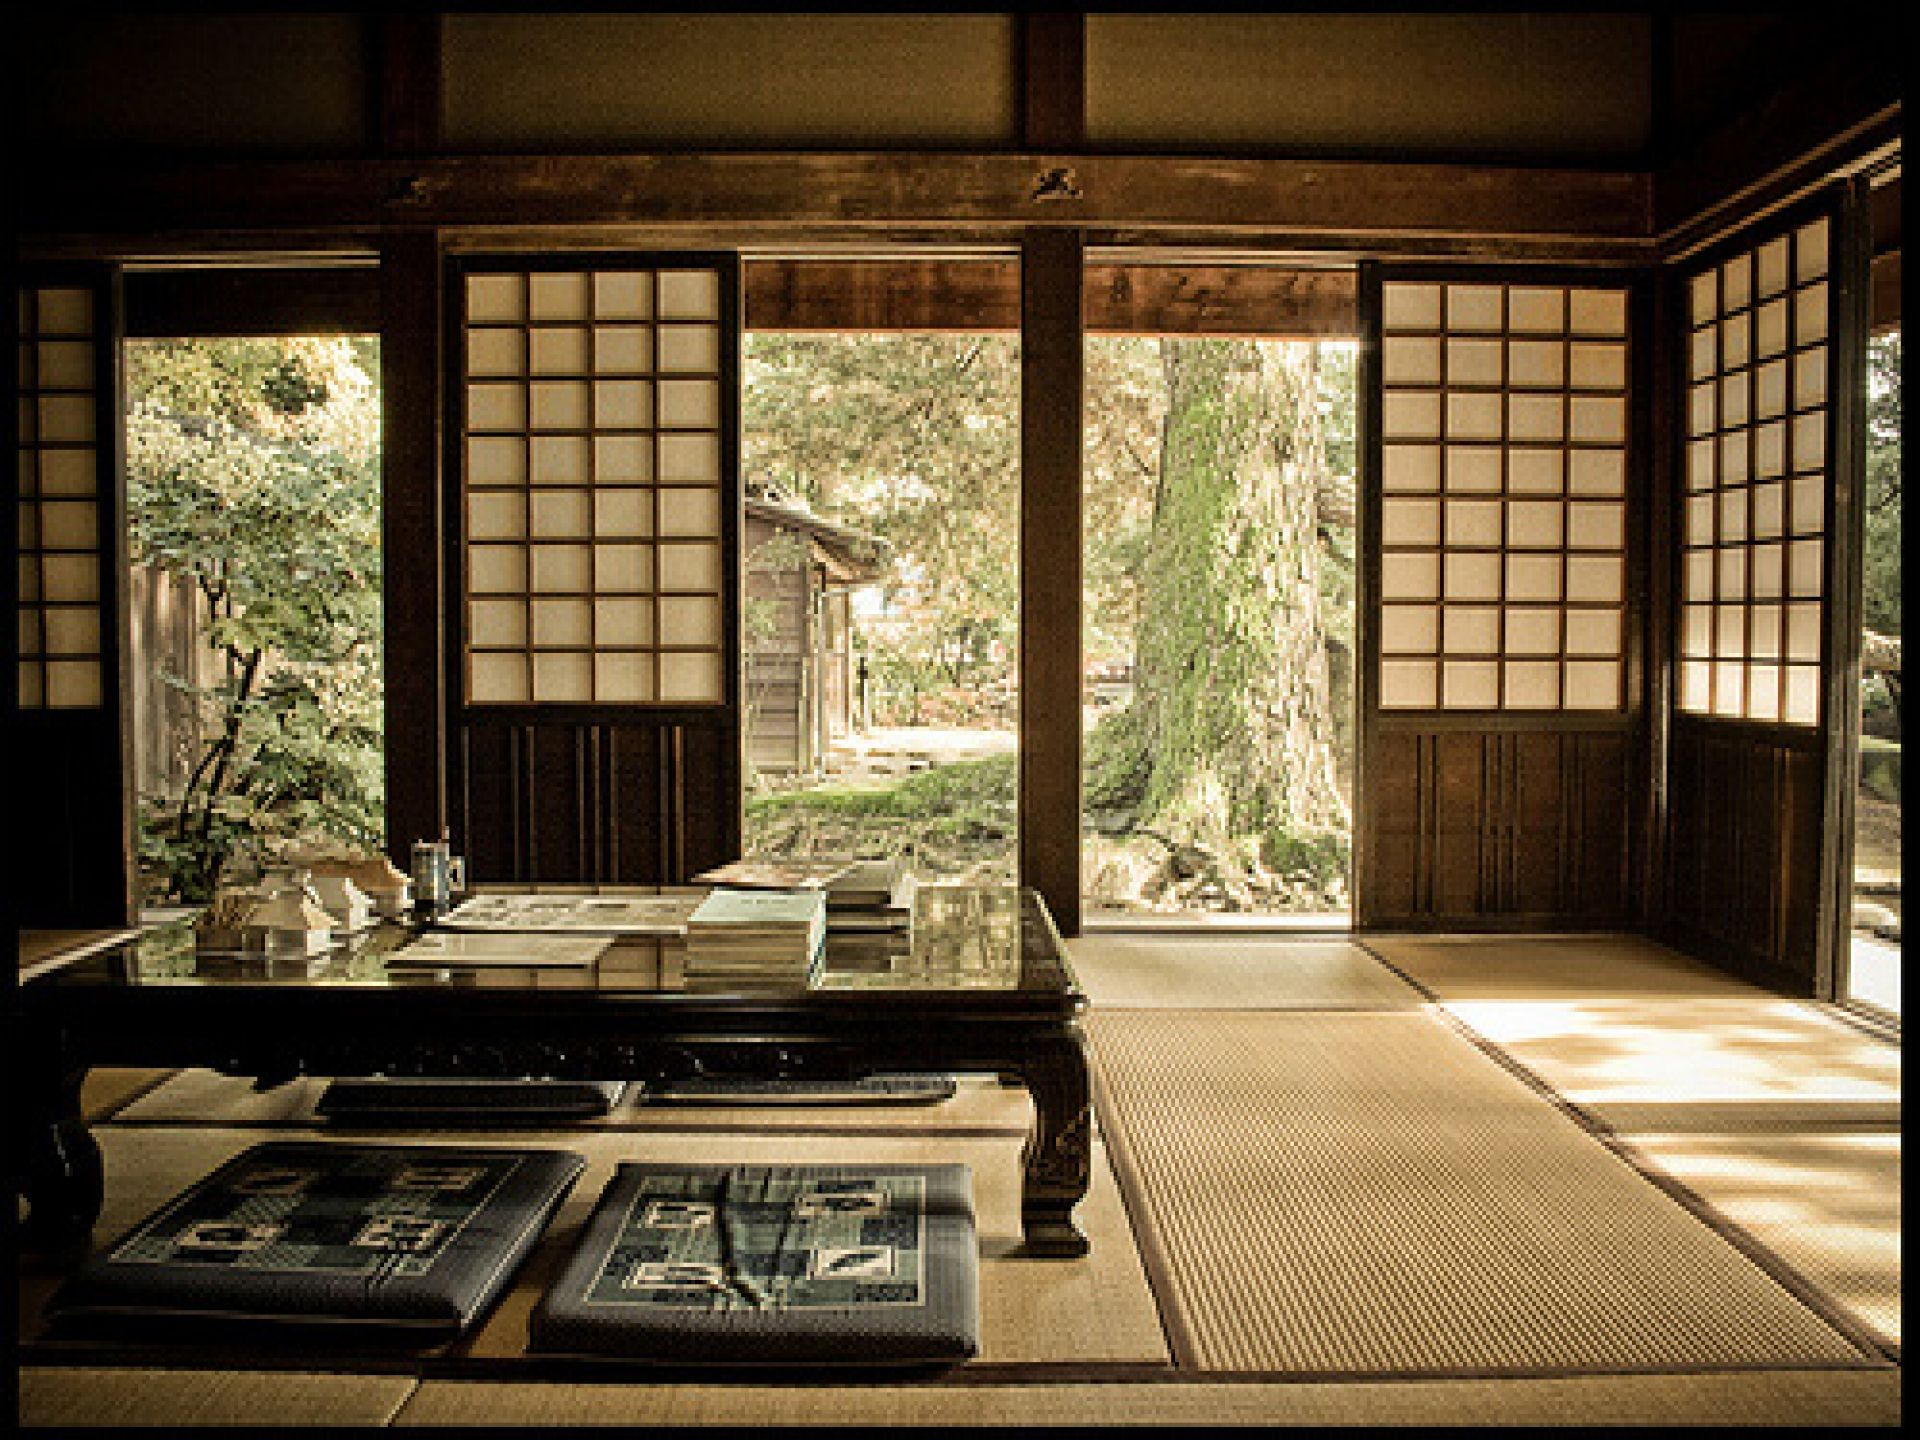 Just like my Otosan & Okasan's house // Traditional Japanese room with  garden outside